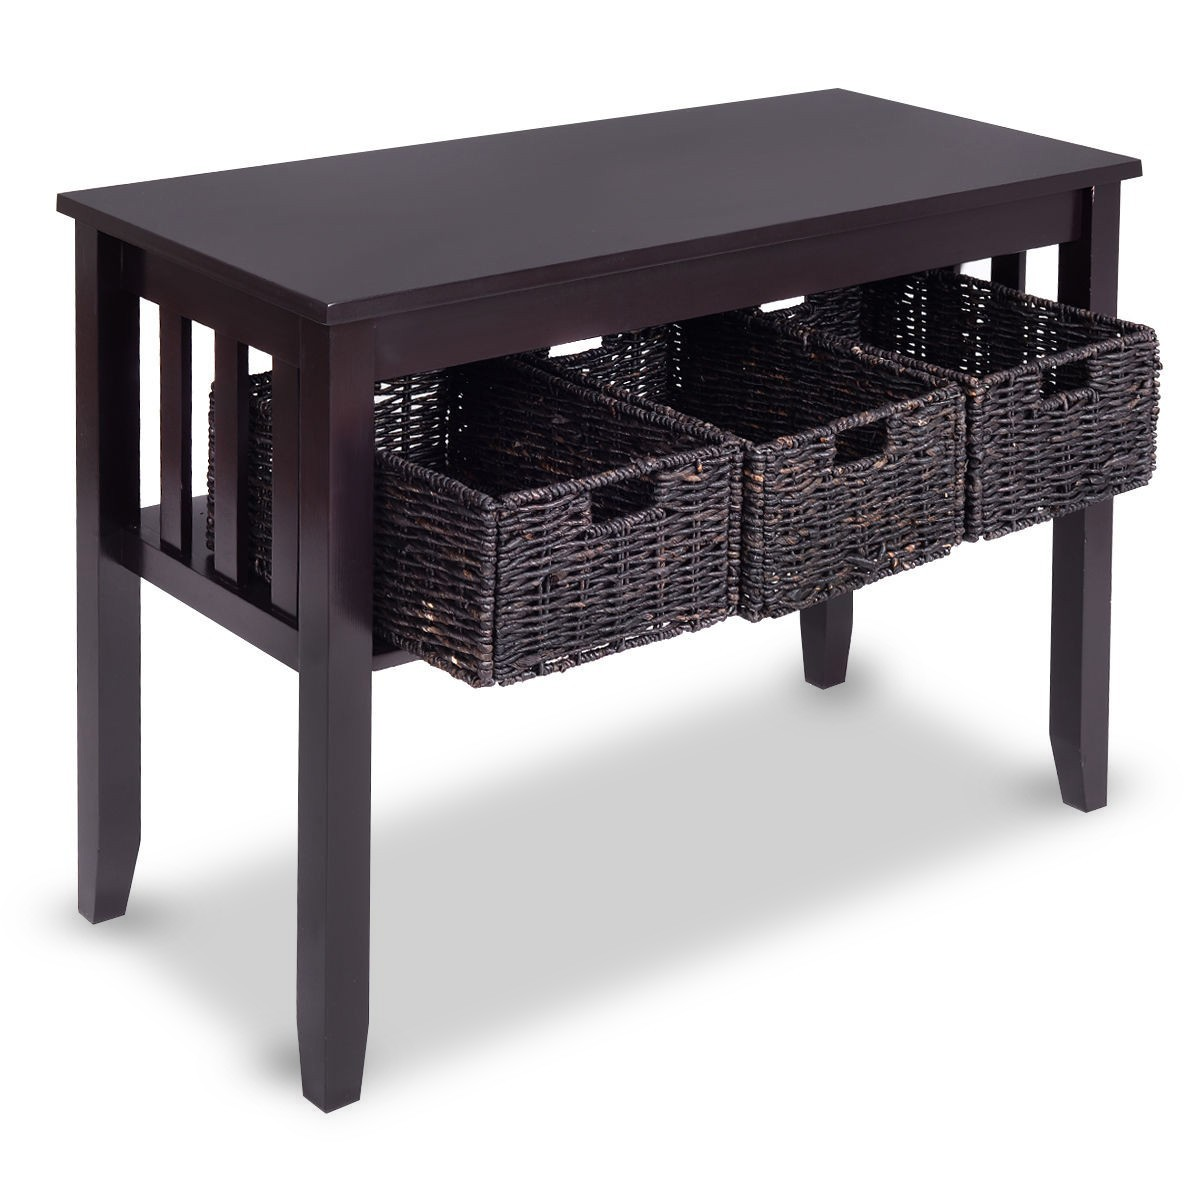 wooden rectangular side storage table with rattan accent zoey night baskets walnut mosaic kohls farmhouse dining room and chairs modern linens end tables doors glass tesco coffee